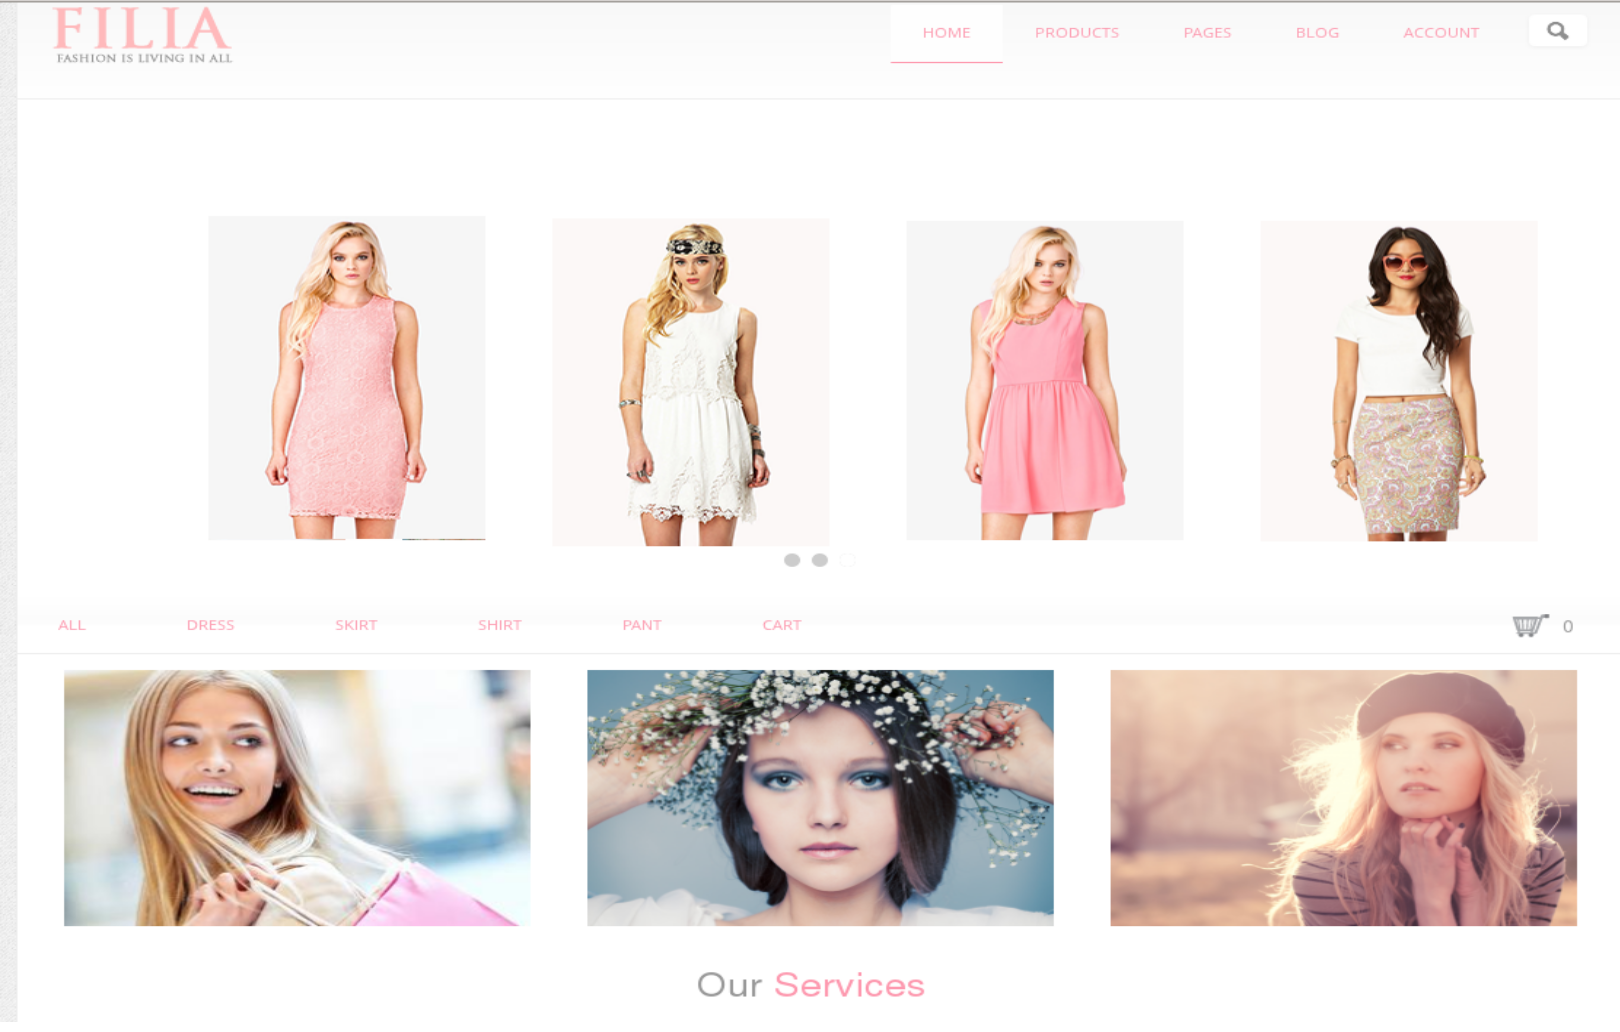 FILIA - amazing Drupal ecommerce theme